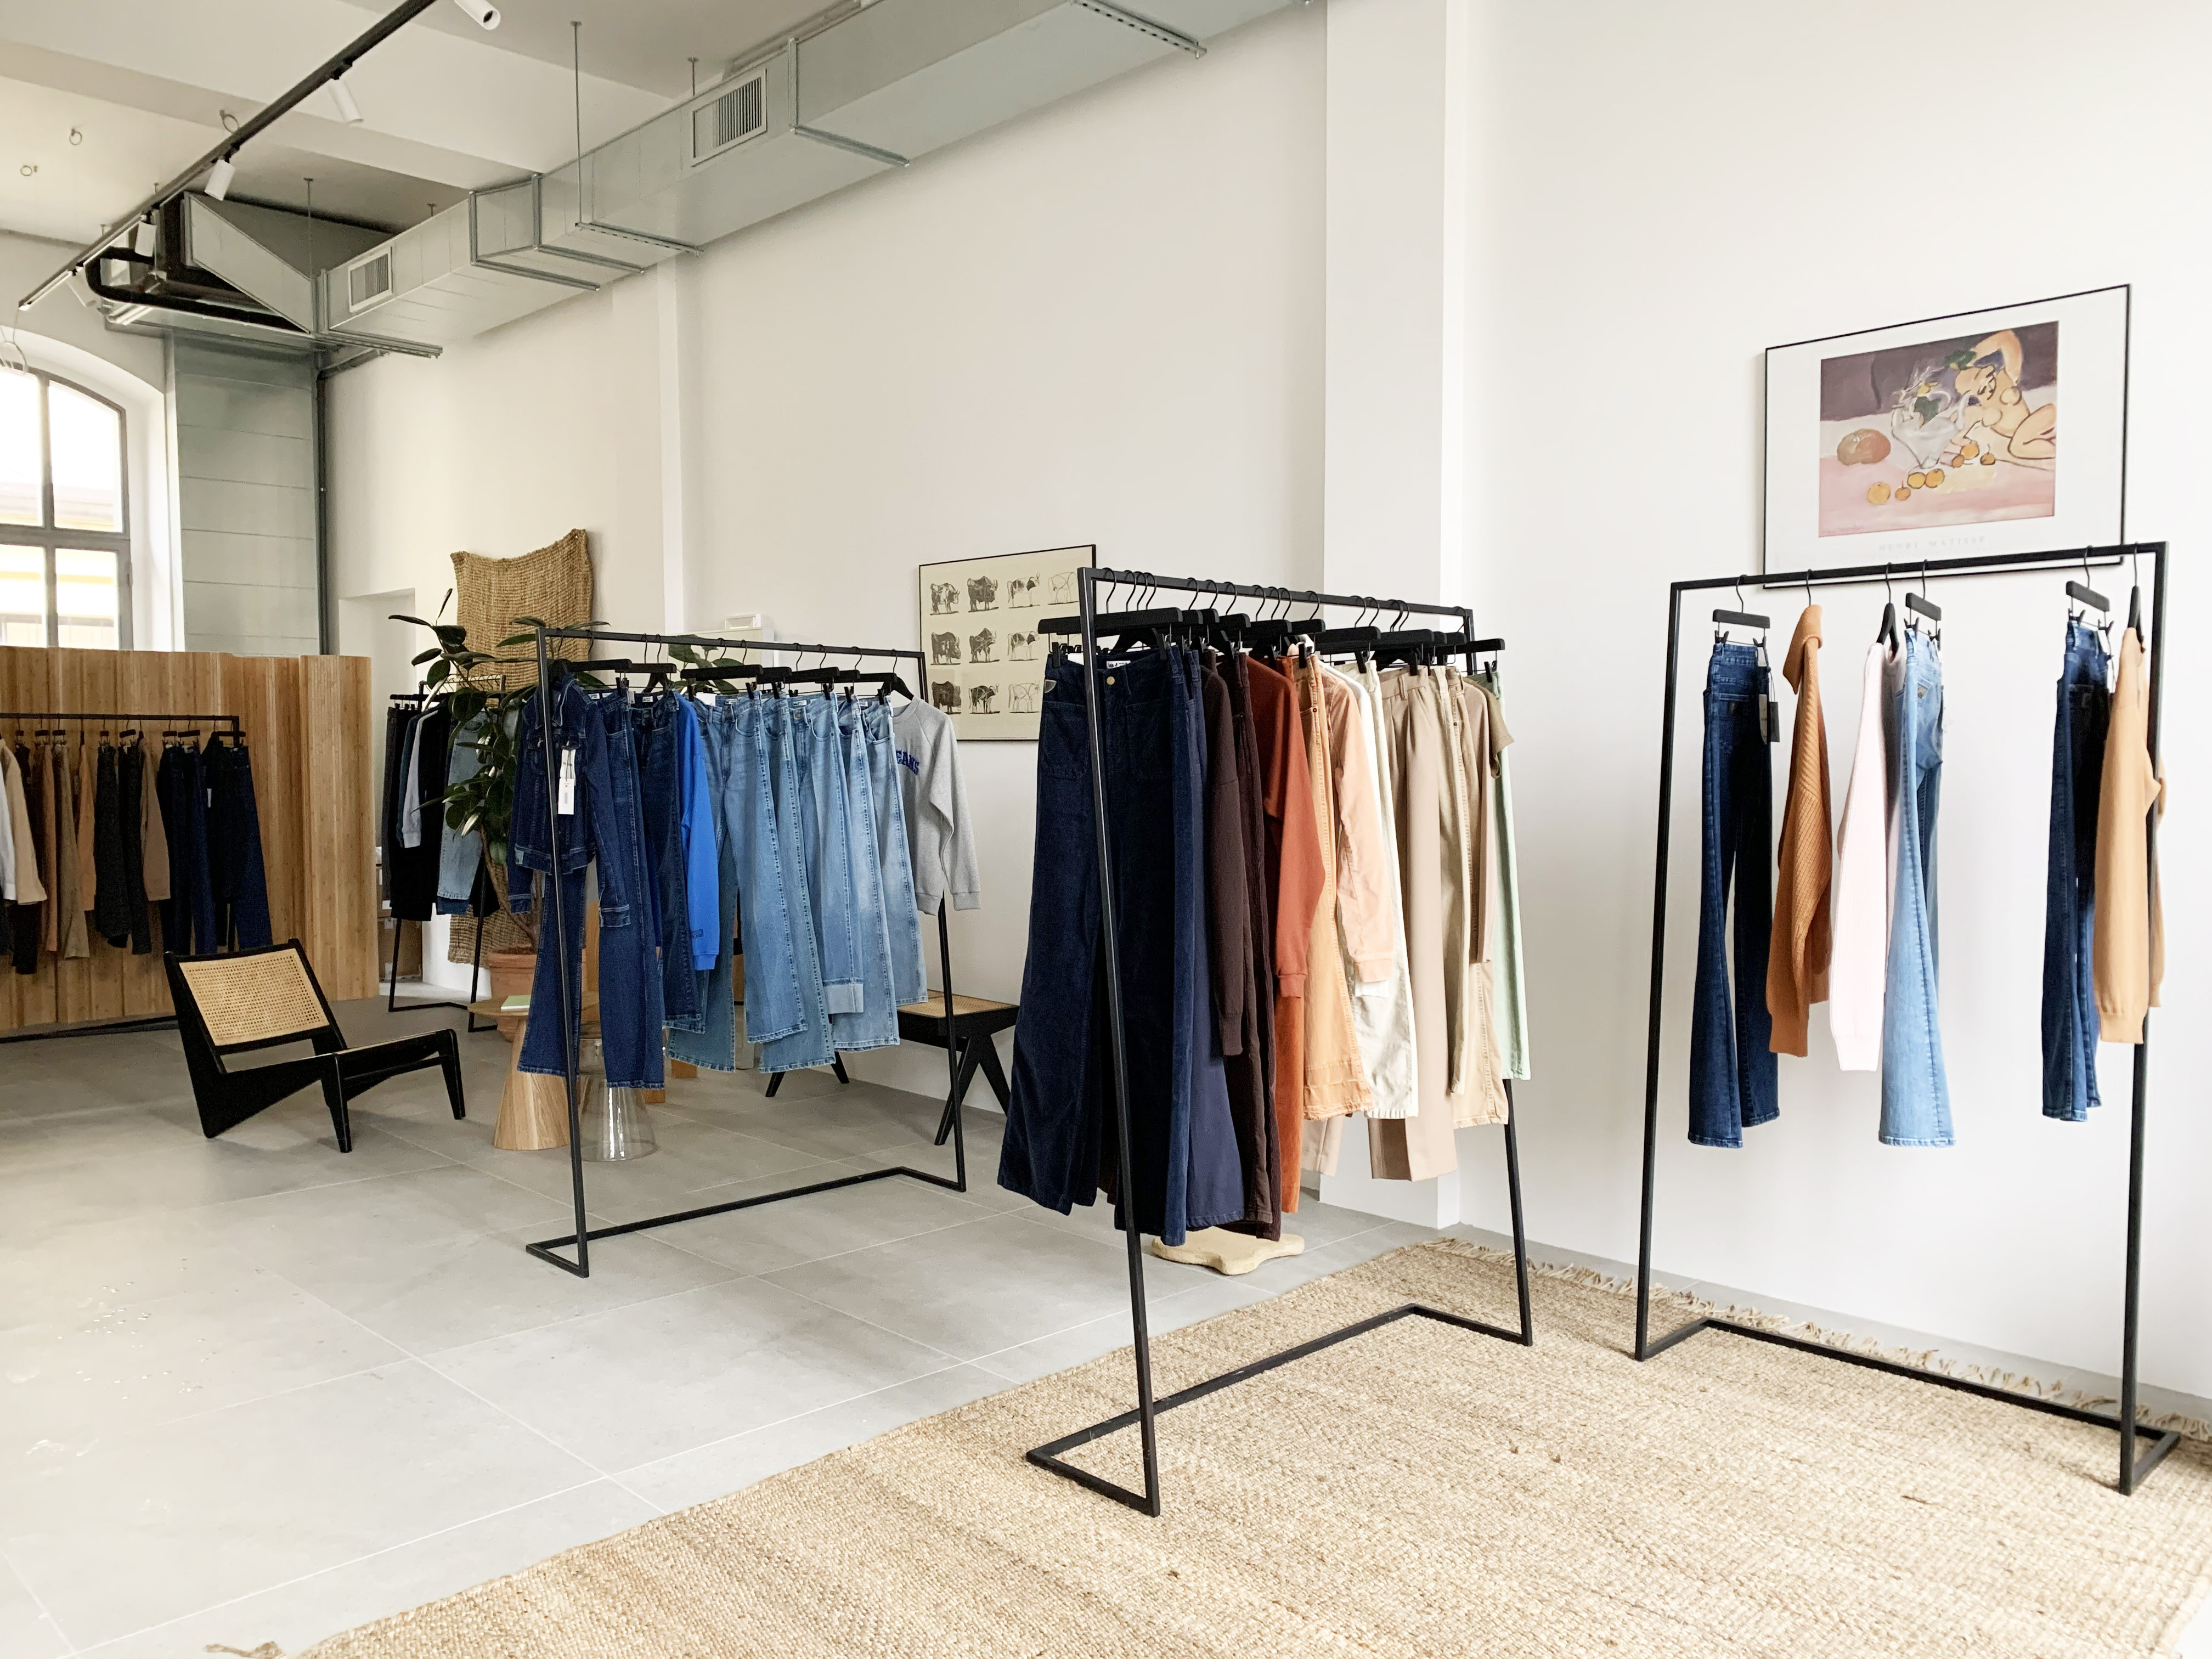 Lois Jeans - temporay showroom AI 21/22 in Via Tortona 31 - 2